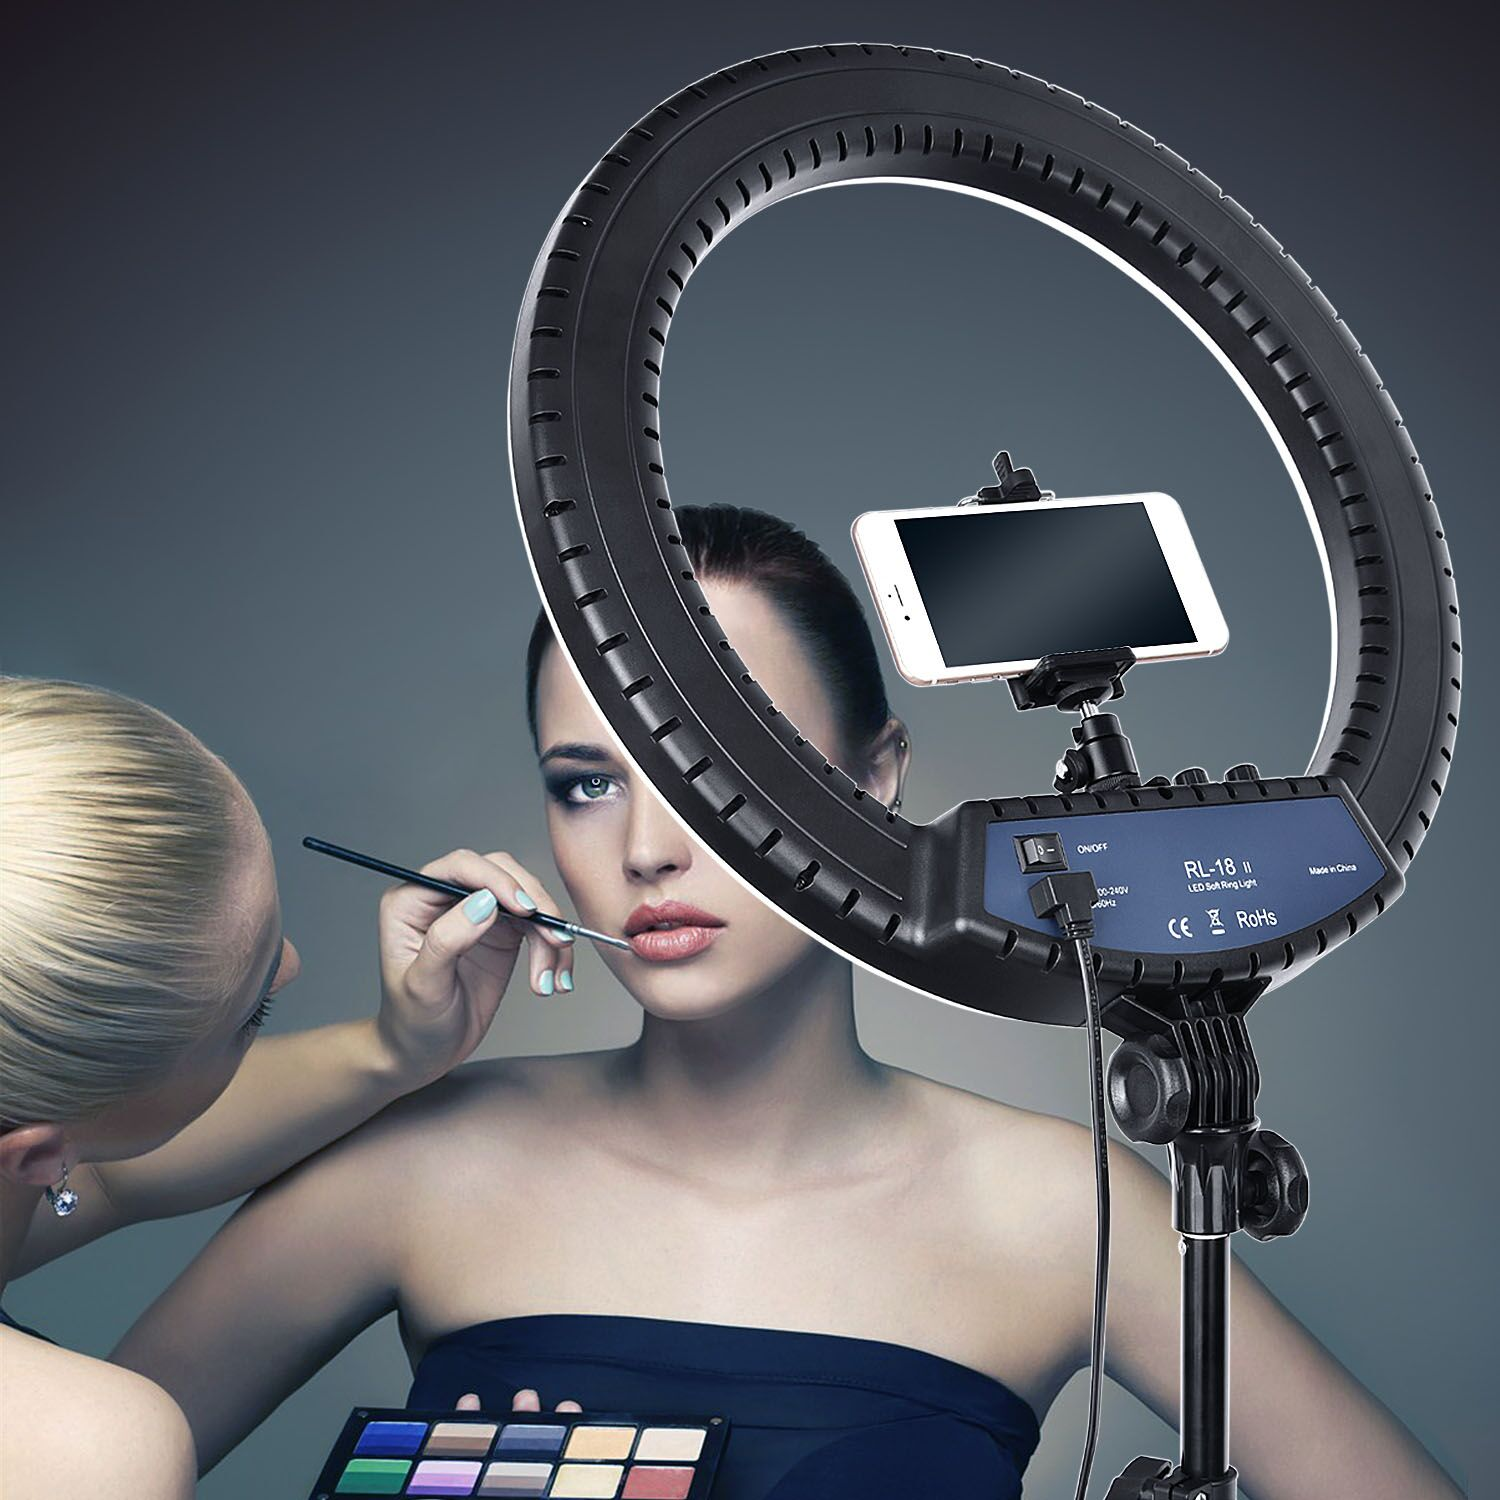 H214c66bd9cd64653adf05056842e2319Z FOSOTO RL-18II Led Ring Light 18 Inch Ring Lamp 55W Ringlight Photography Lamp With Tripod Stand For Phone Makeup Youtube Tiktok